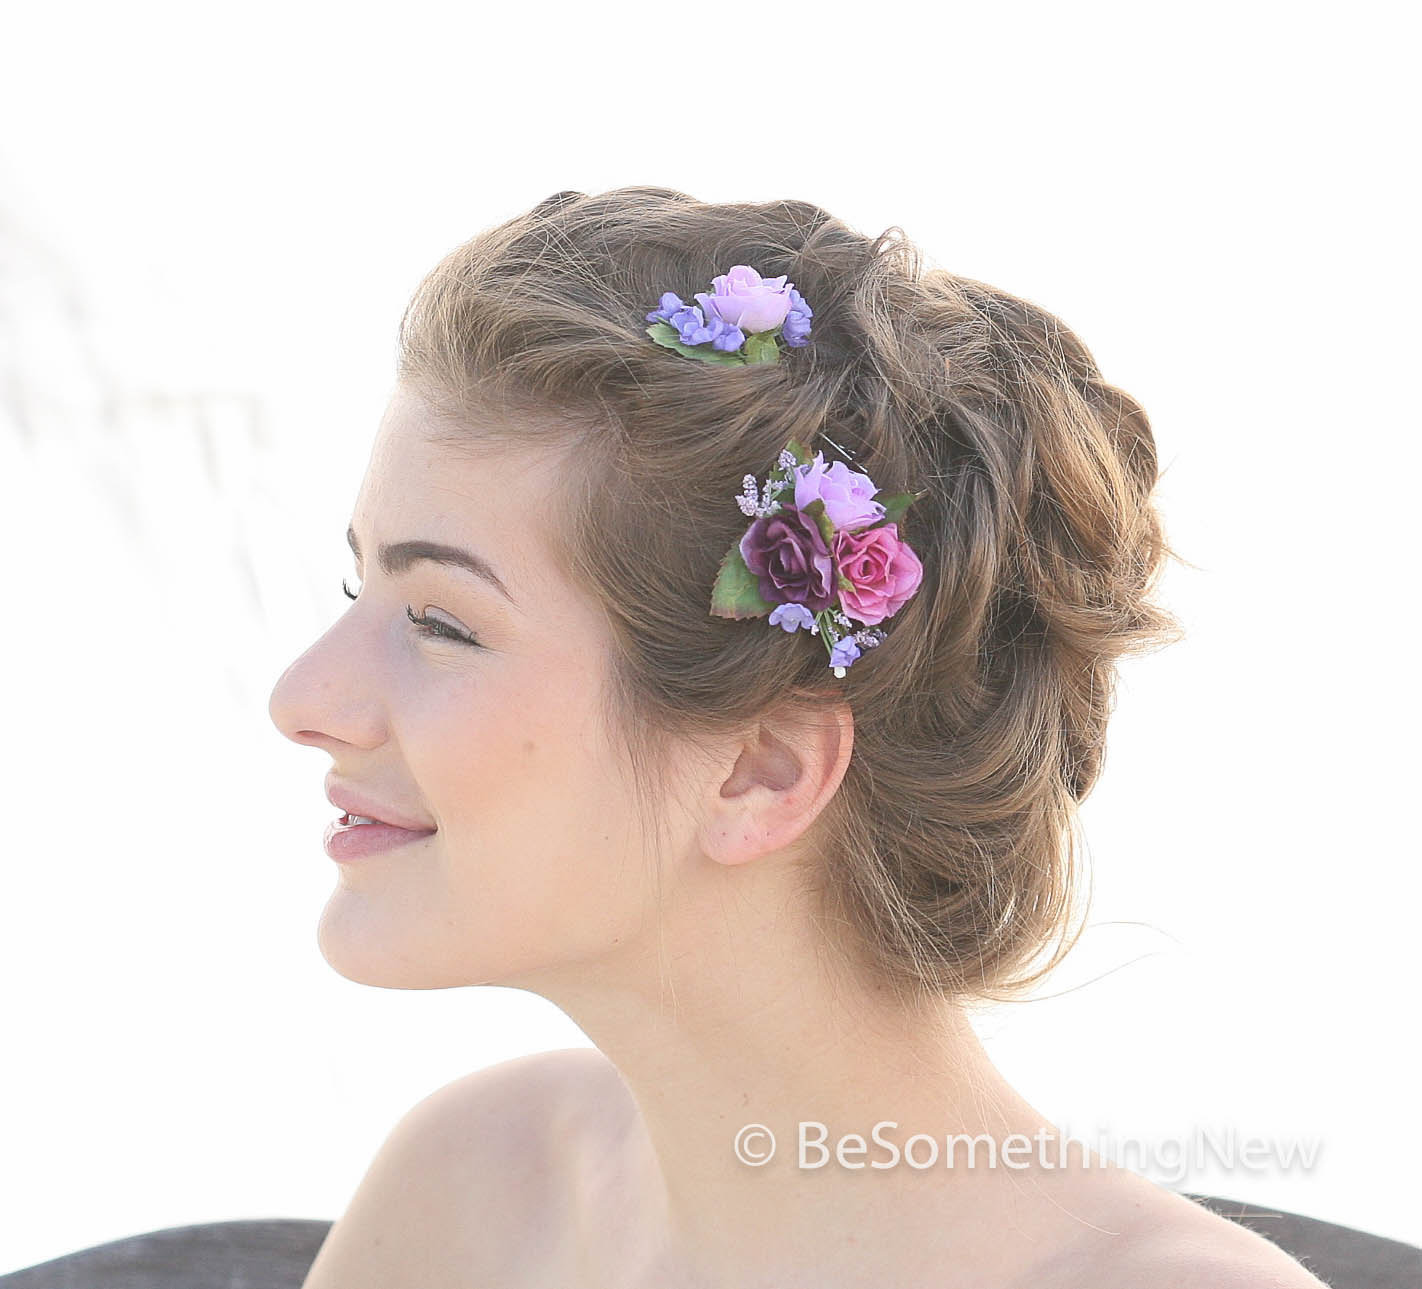 Flower hair pin set is in shades of pink, lavender and wine. wedding hair acceassory flower hair pins